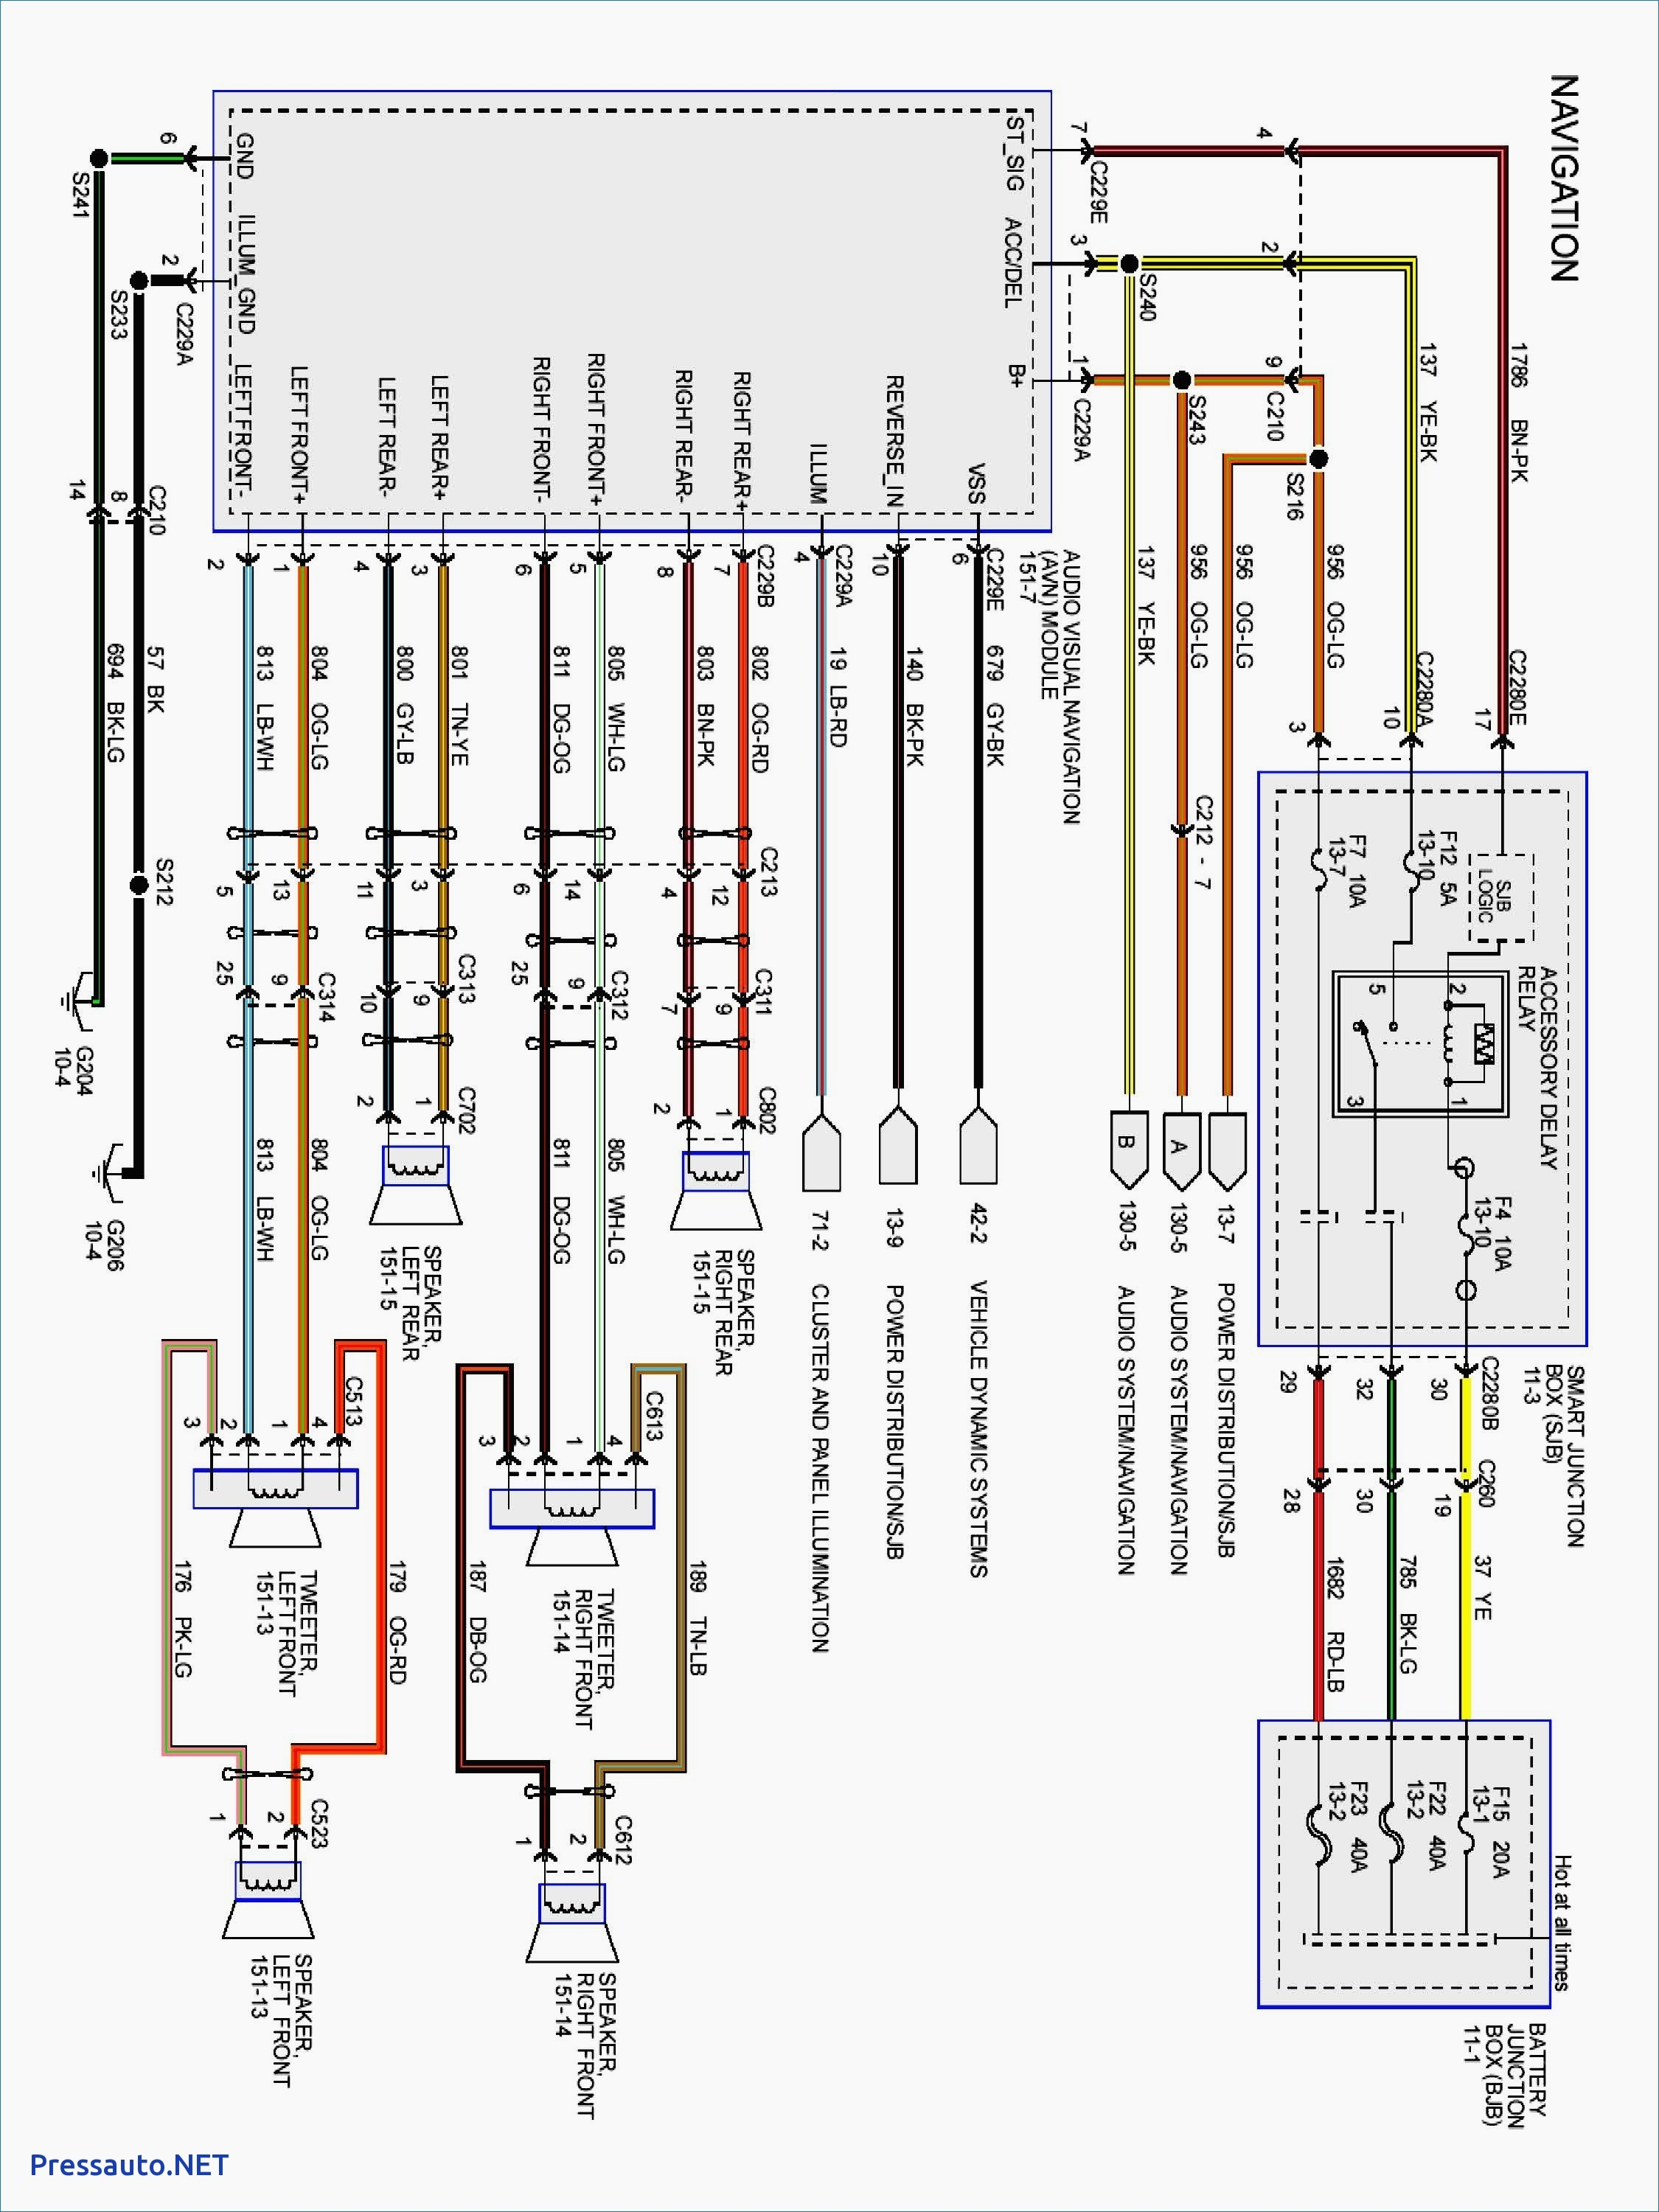 2001 Ford Focus Wiring Diagram E150 Fuse Box Panel E 150 Econoline F350 3 Lenito Of